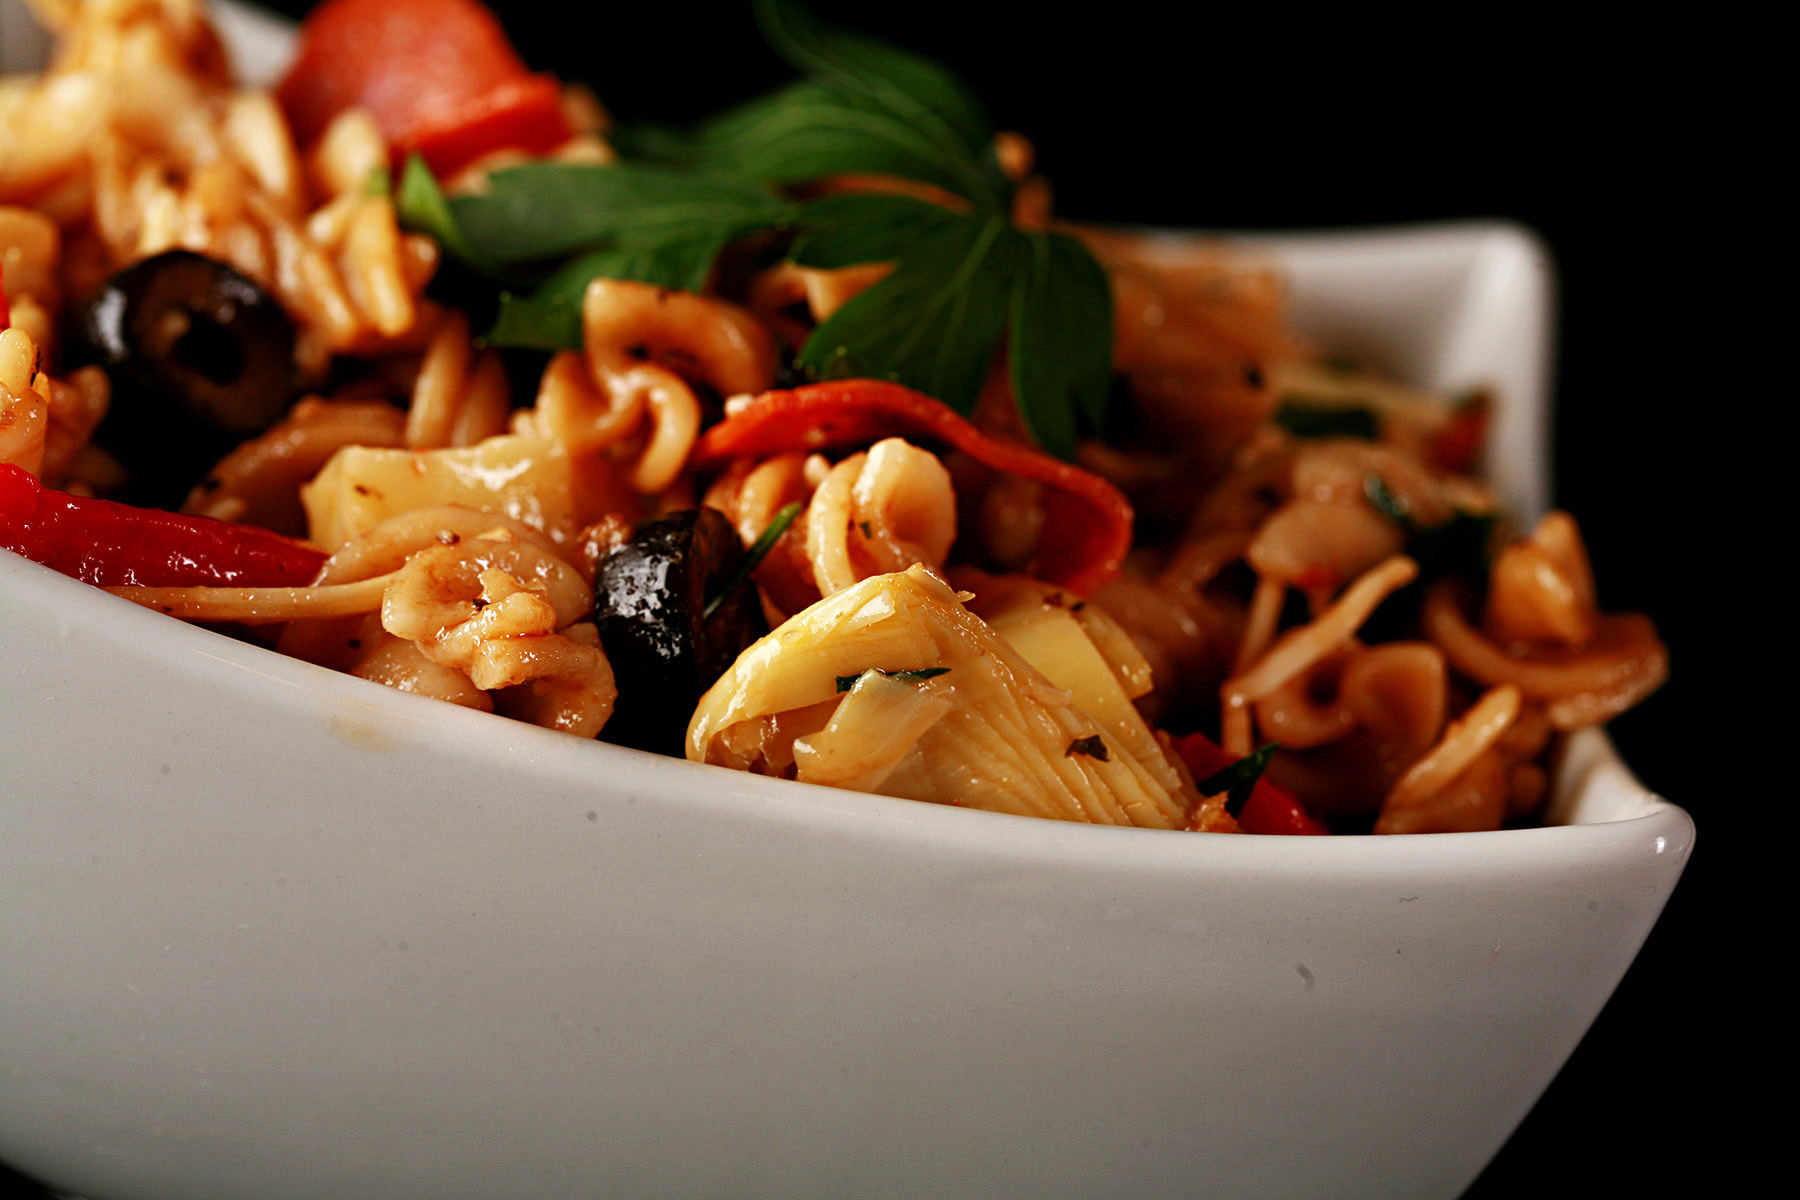 A rich looking pasta salad in a white bowl. Spiral noodles are shown lgthly coated in a thin red sauce, with pepperoni, artichokes, black olives, cheese, and parsley visible.""